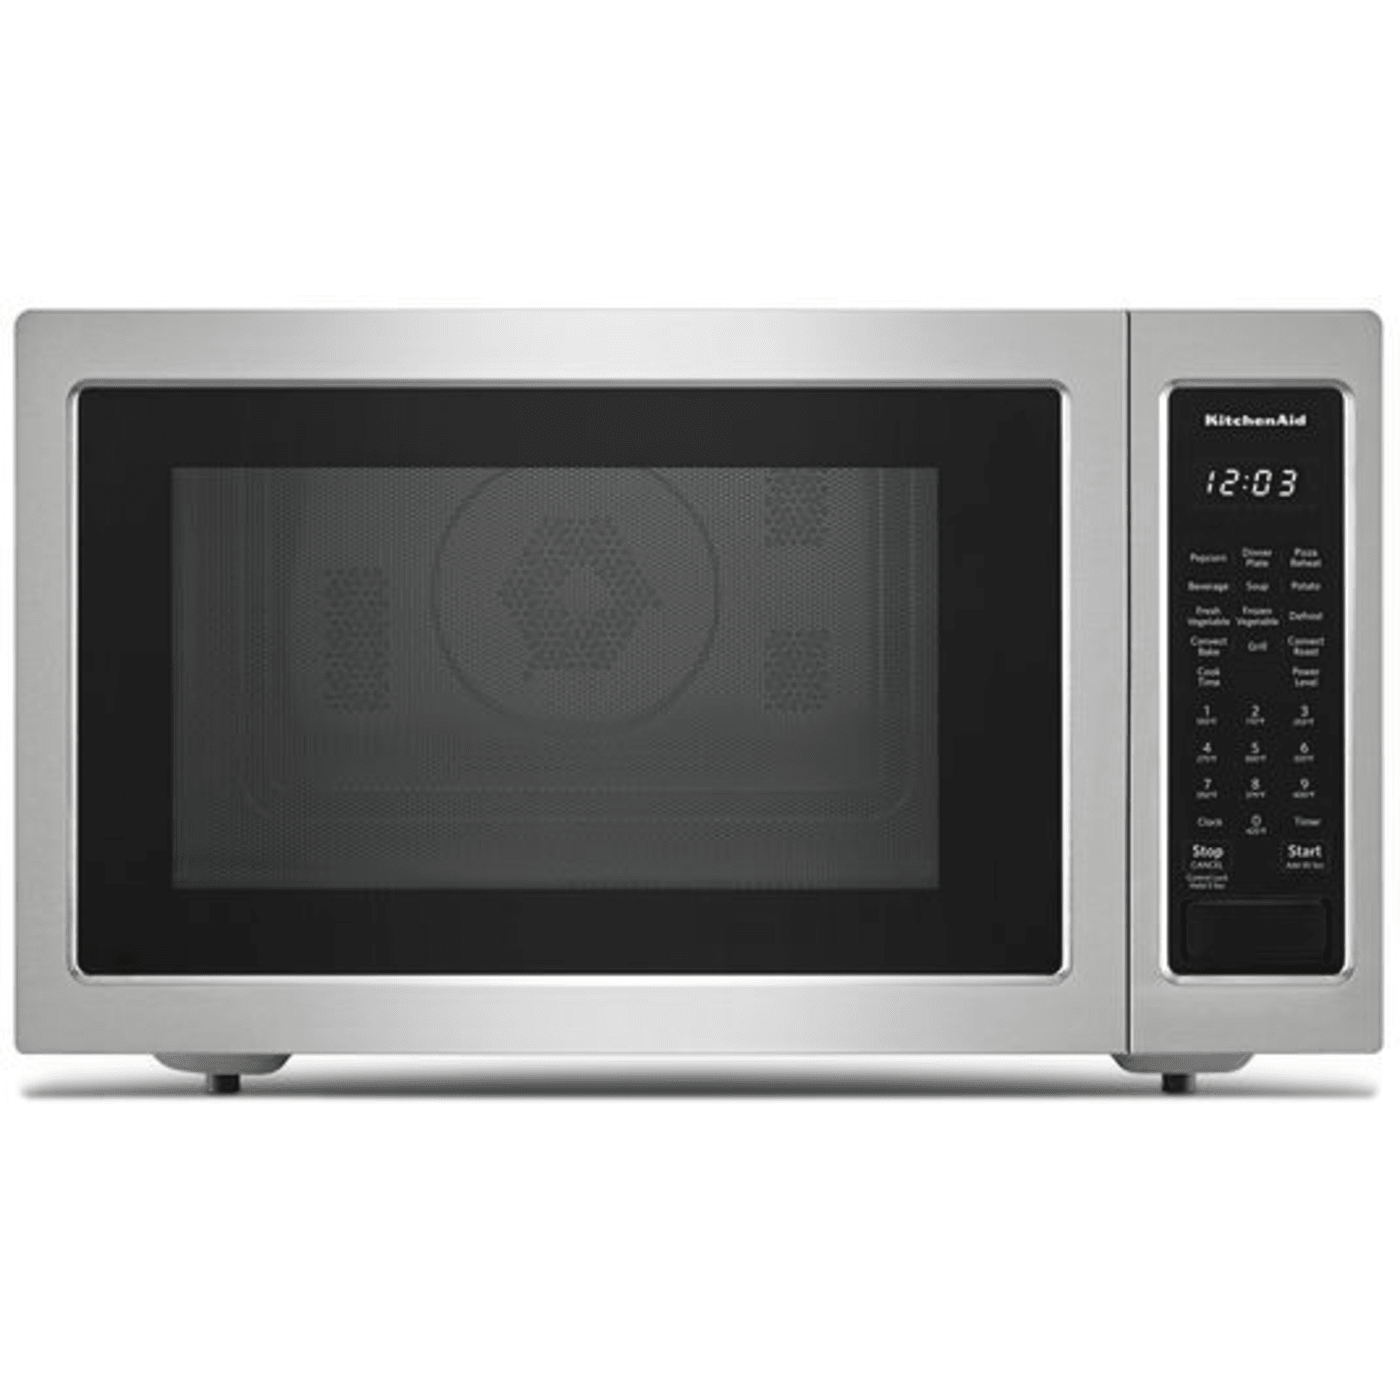 Kmcc5015gss By Kitchenaid Countertop Microwaves Goedekers Com Stainless Steel Microwave Countertop Microwave Microwave Convection Oven